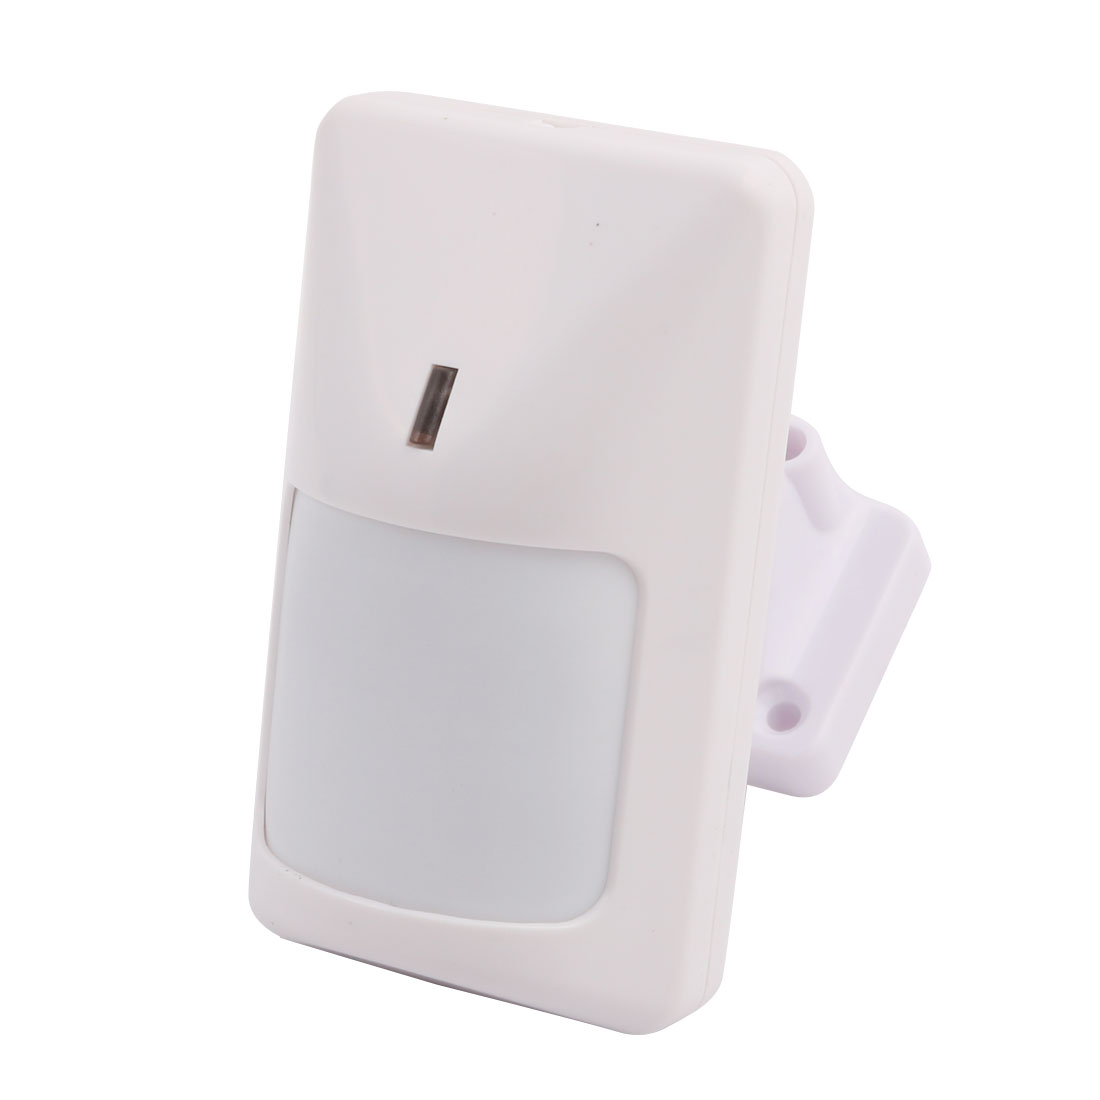 Home Wireless Wall Mount Single Optic Passive Motion IR Sensor Detector PIR Alarm